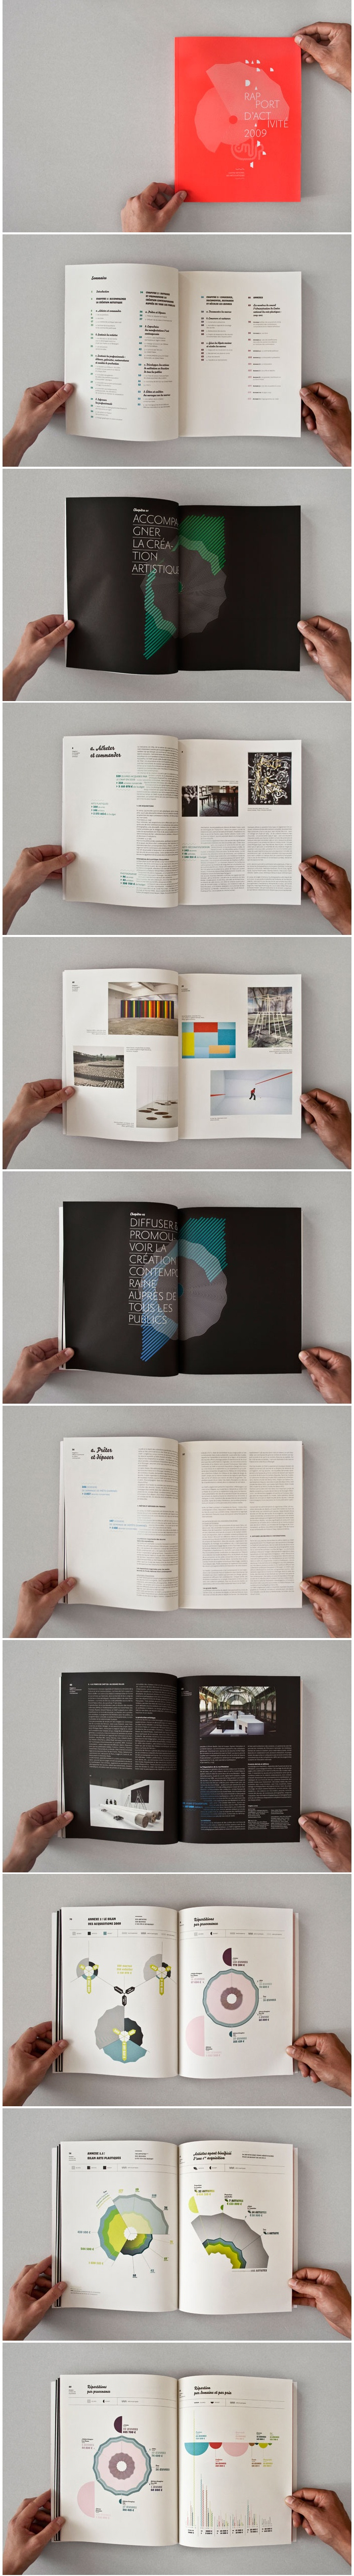 "#Rapport d'activité 2009 #layout ""graphicdesign #editorial"